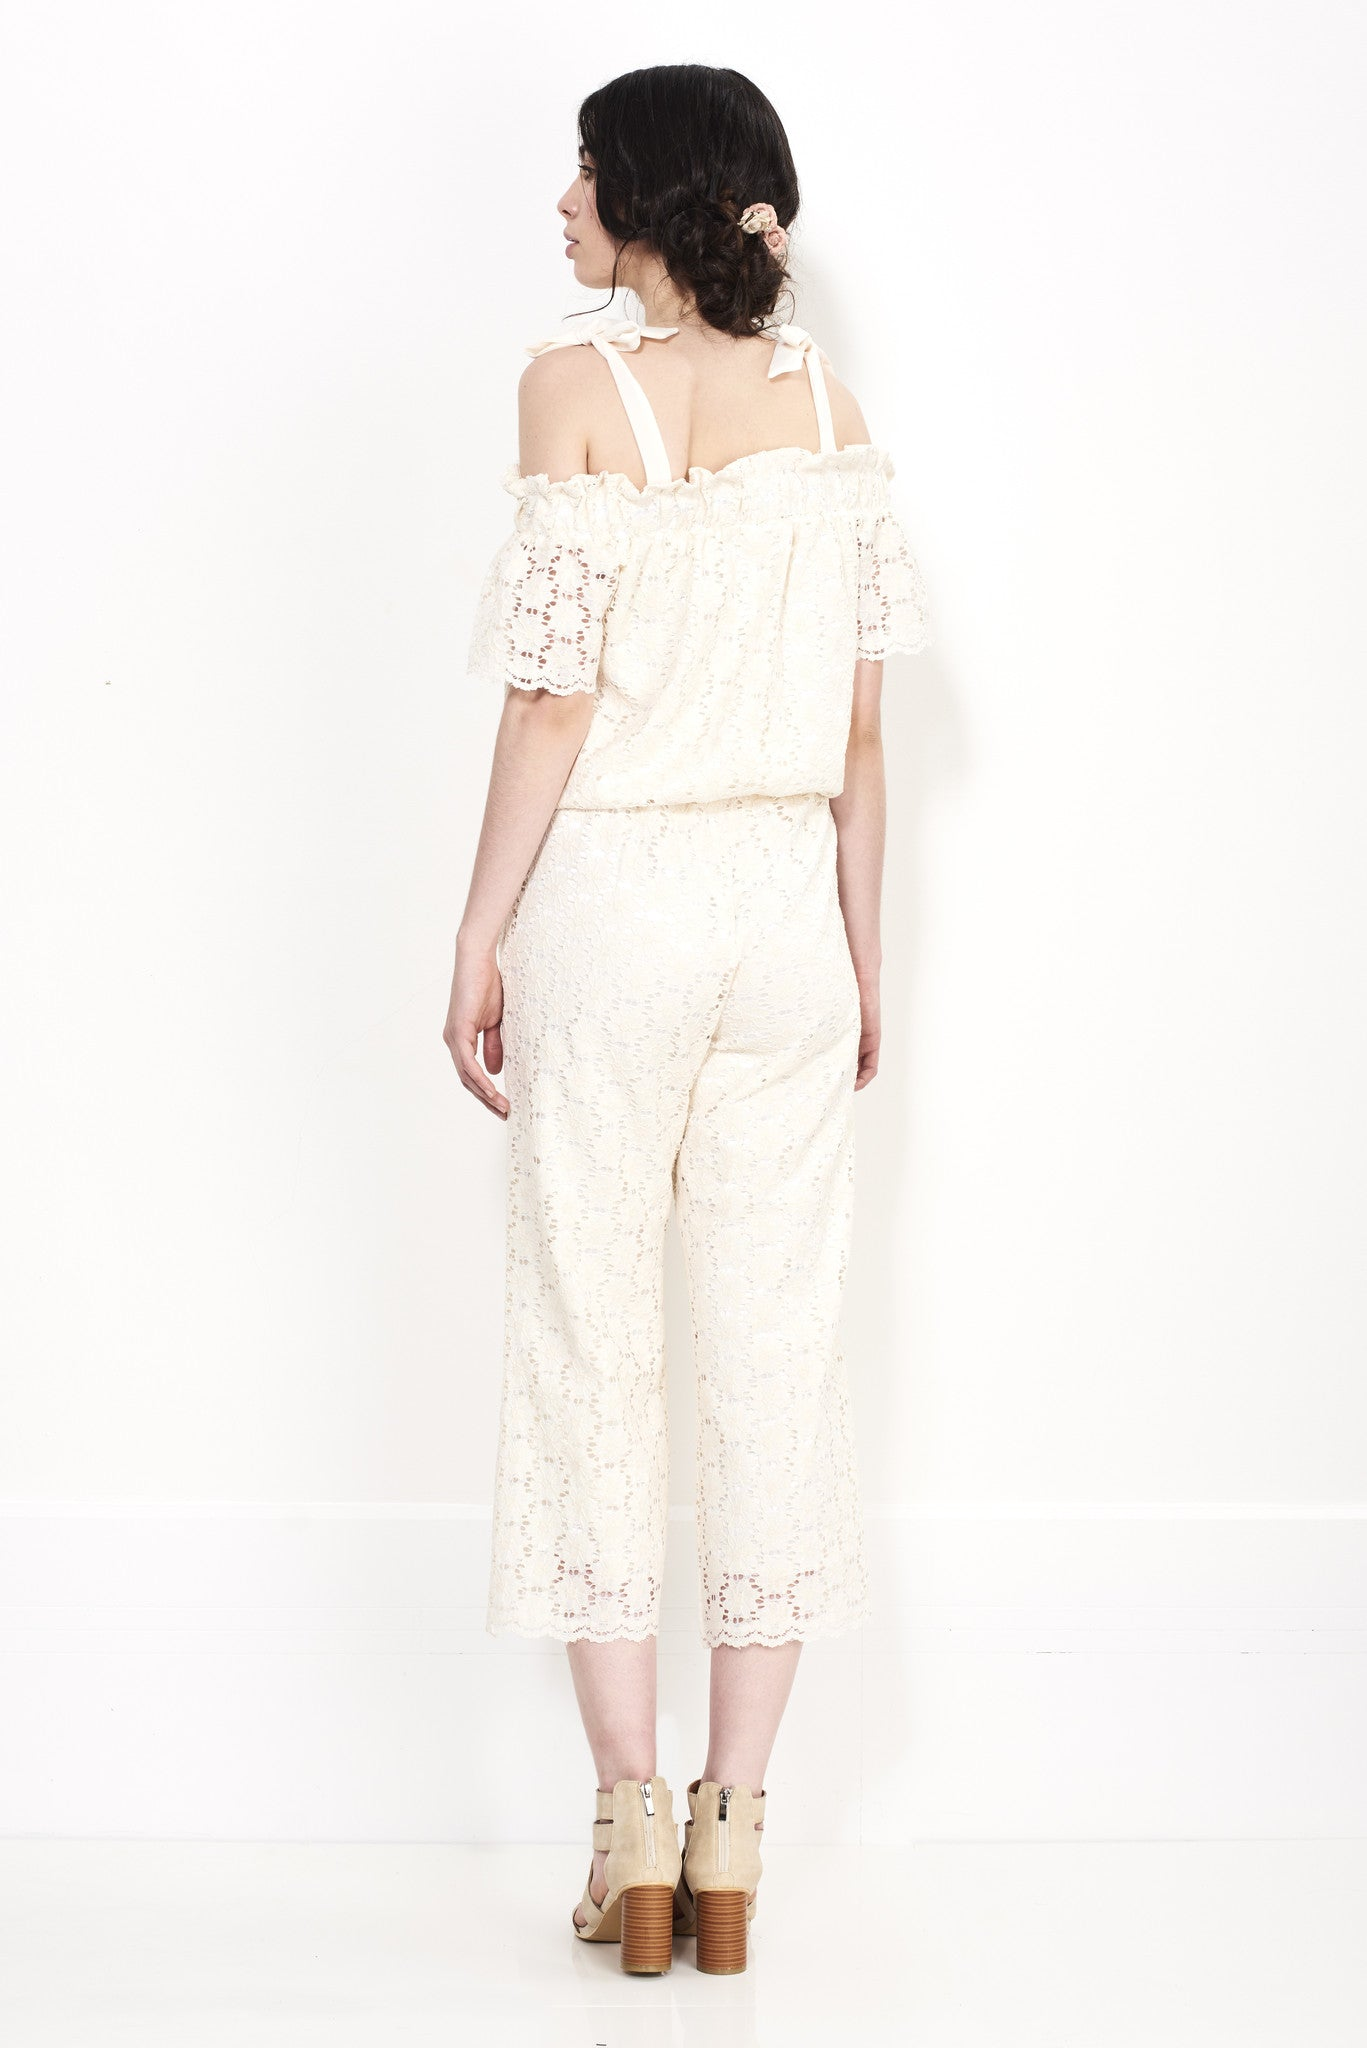 OFF SHOULDER JUMPSUIT - Darccy & Soma London